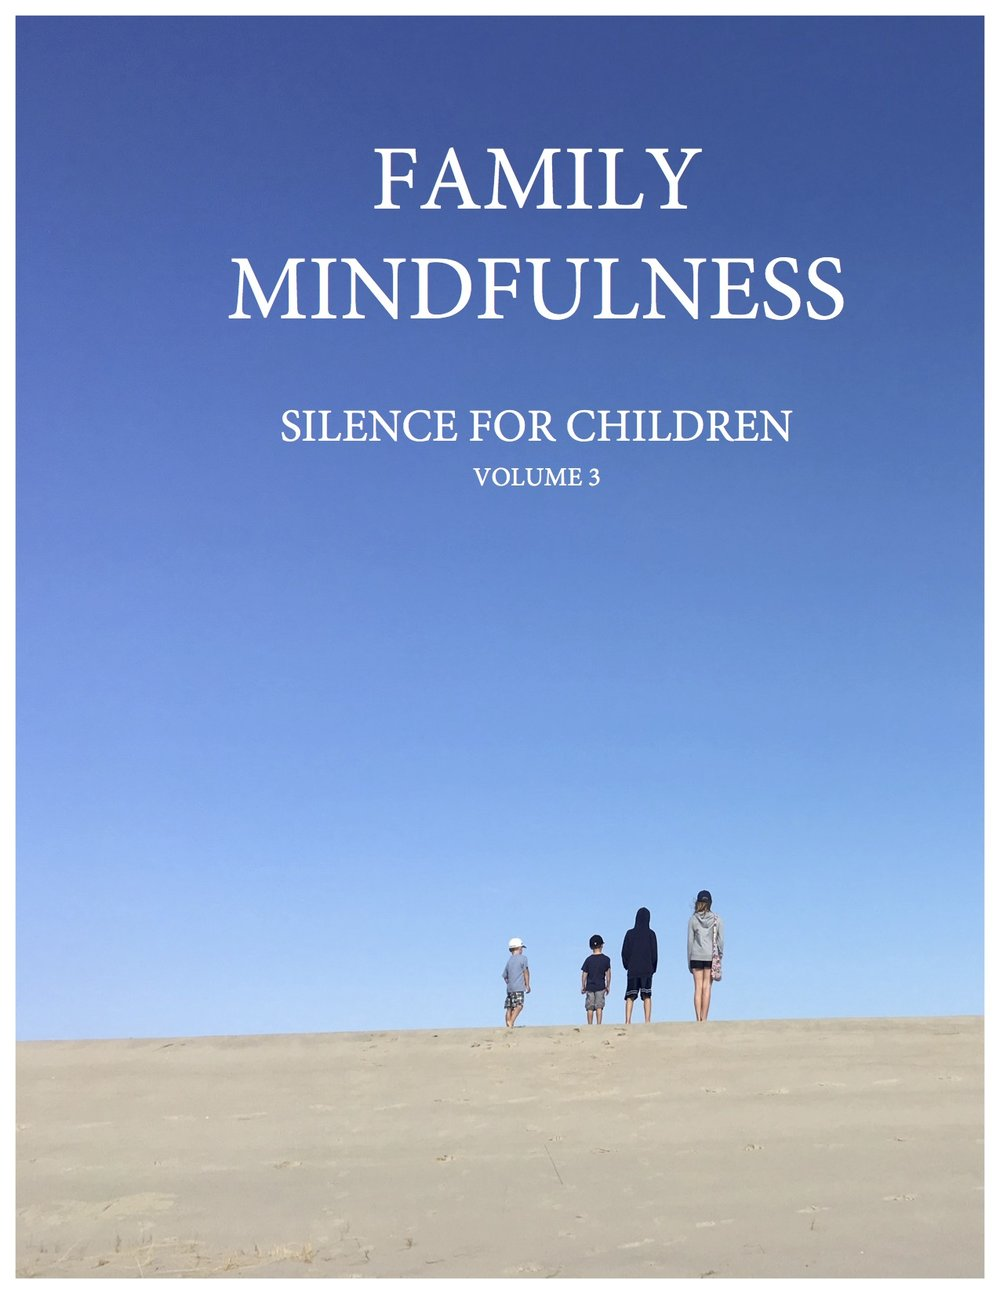 Field Guides - Volume 3 Family Mindfulness Cover (S).jpg